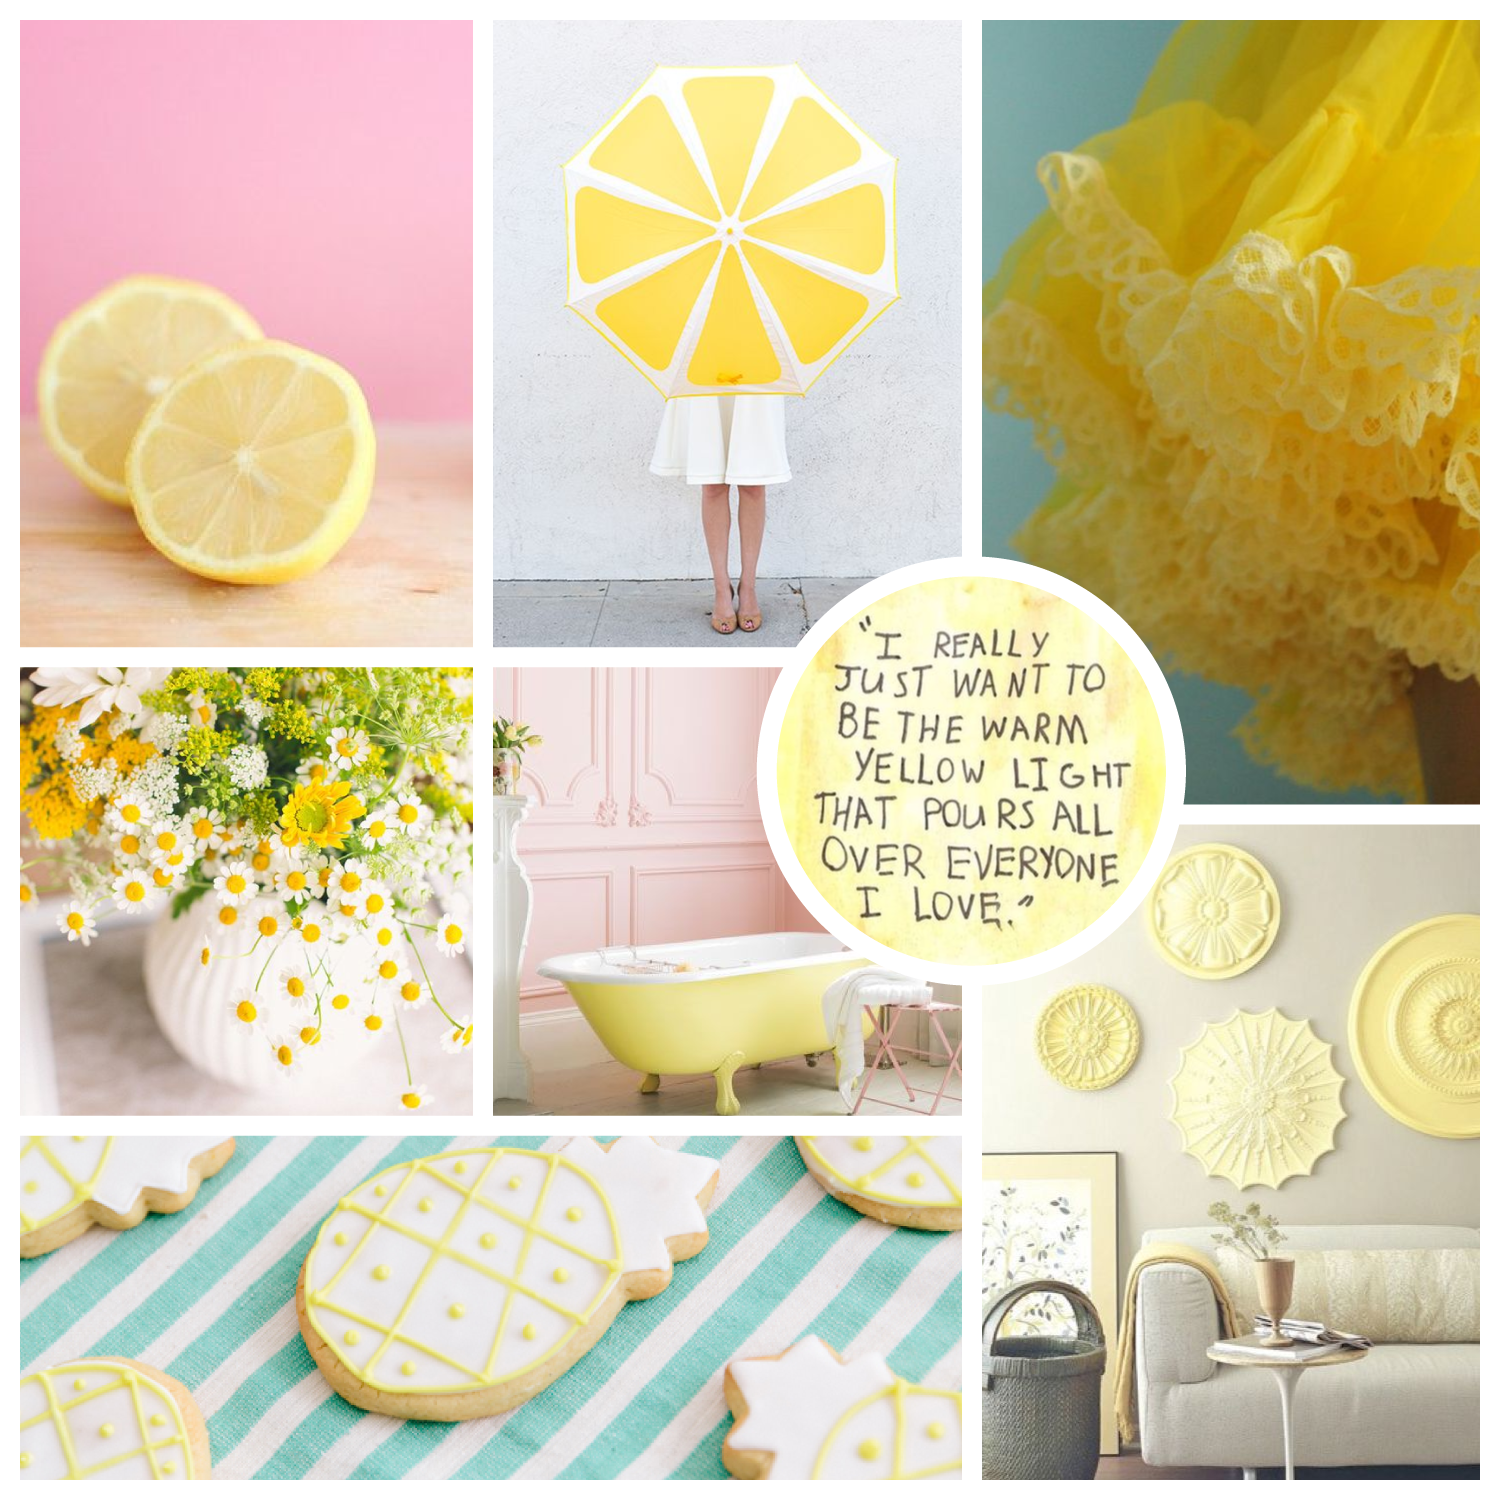 Monday Moodboard #08 - Lemon Squeeze - see more colour themes and brand inspiration at www.garlicfriday.com